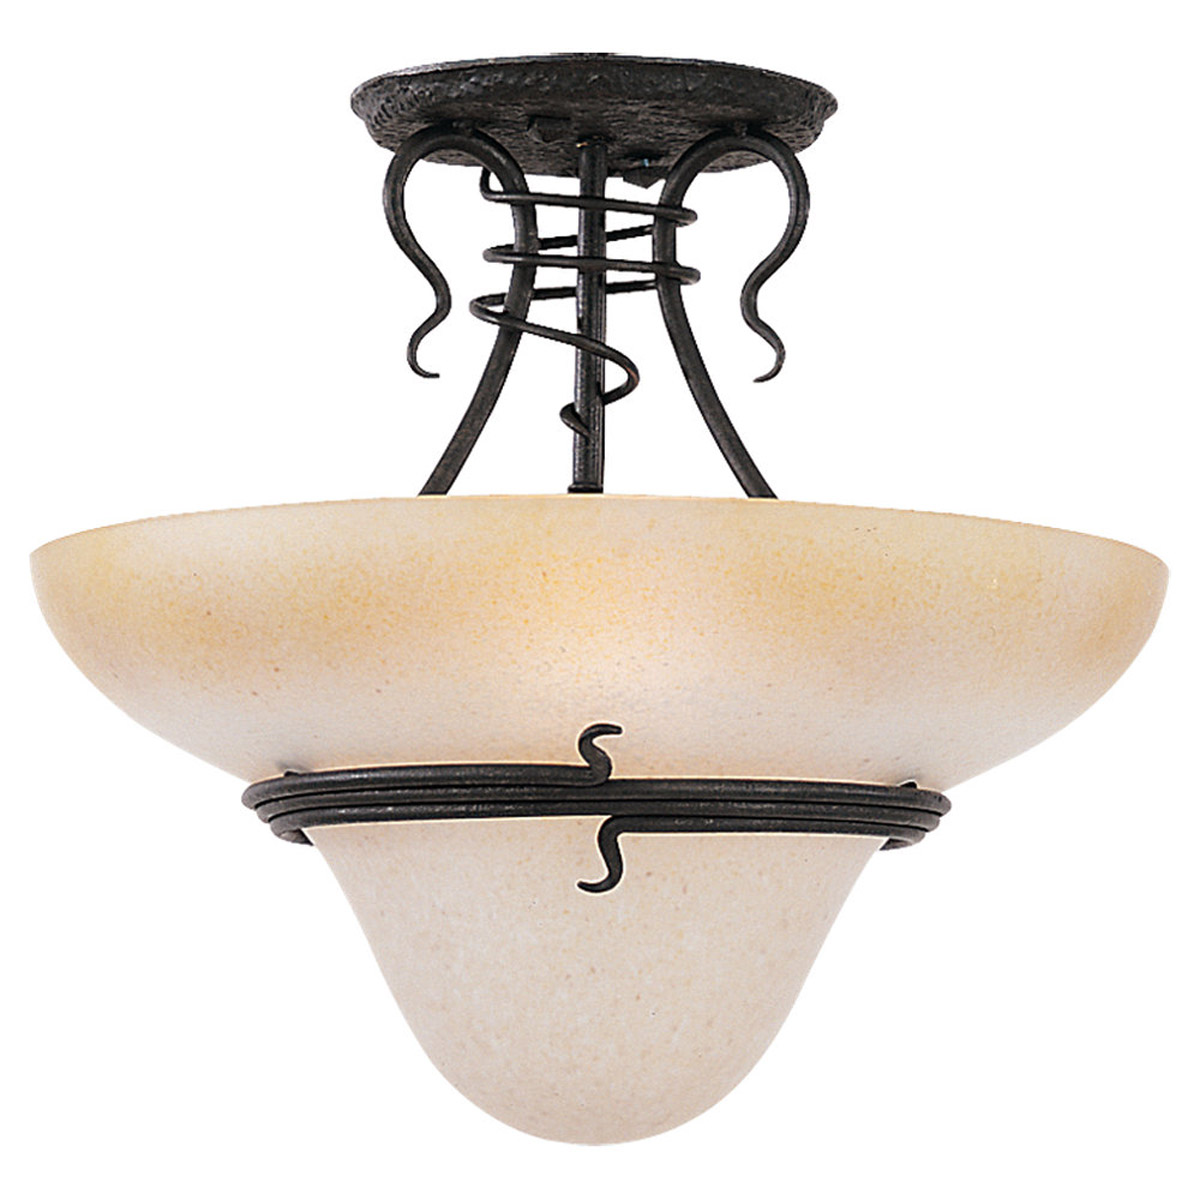 Sea Gull Lighting Saranac Lake 3 Light Semi Flush Mount in Forged Iron 7713-185